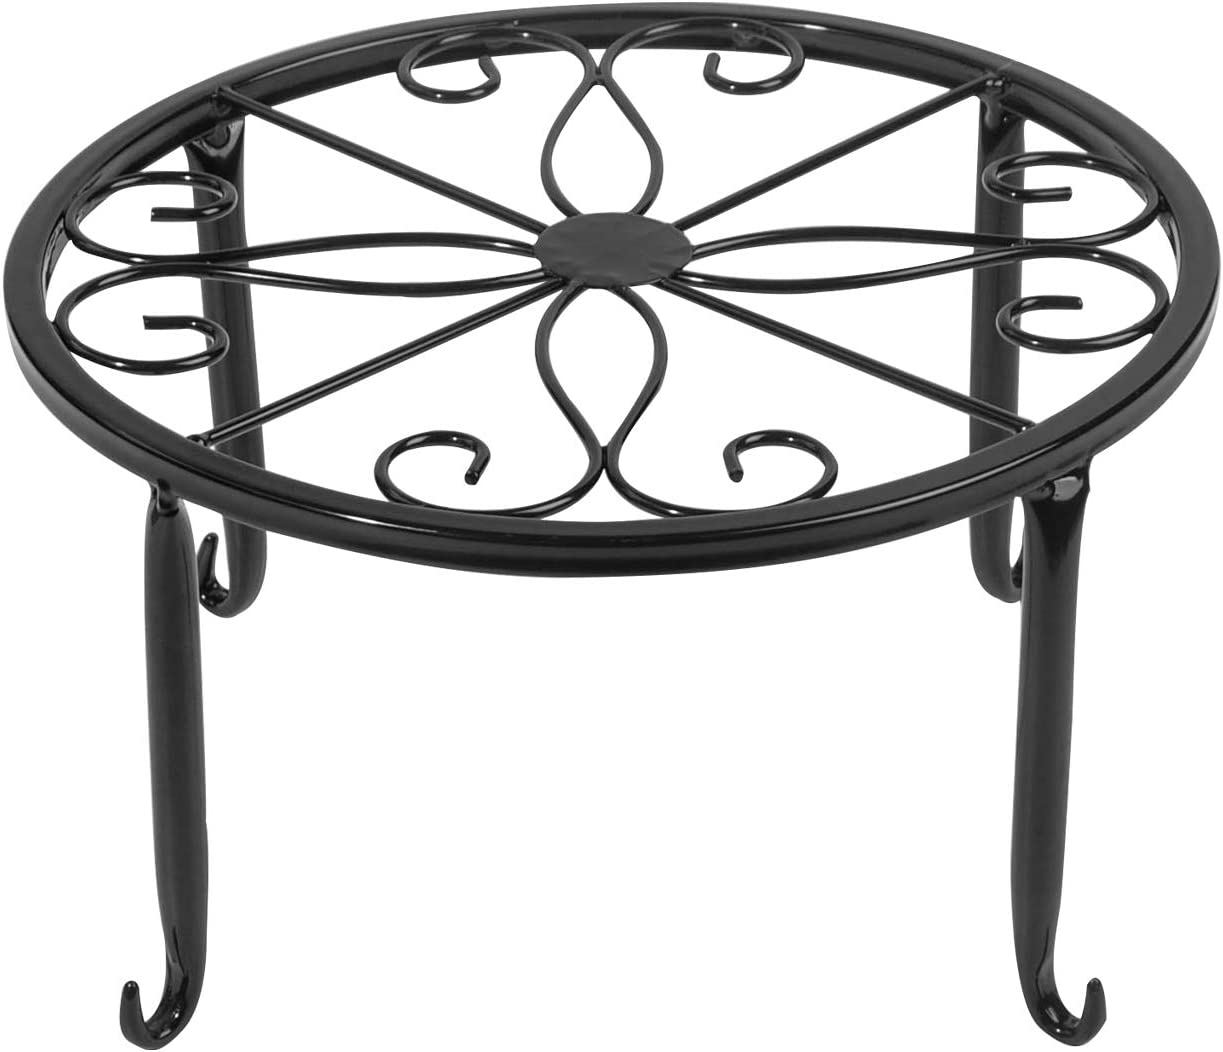 1 Pack Iron Black Antirust Plant Stand,Easy Movable and Stable Potted Holder for Indoor Outdoor Heavy Duty Container,Beverage Dispenser on Livingroom Floor,Balcony, Porch,Tabletop (1)